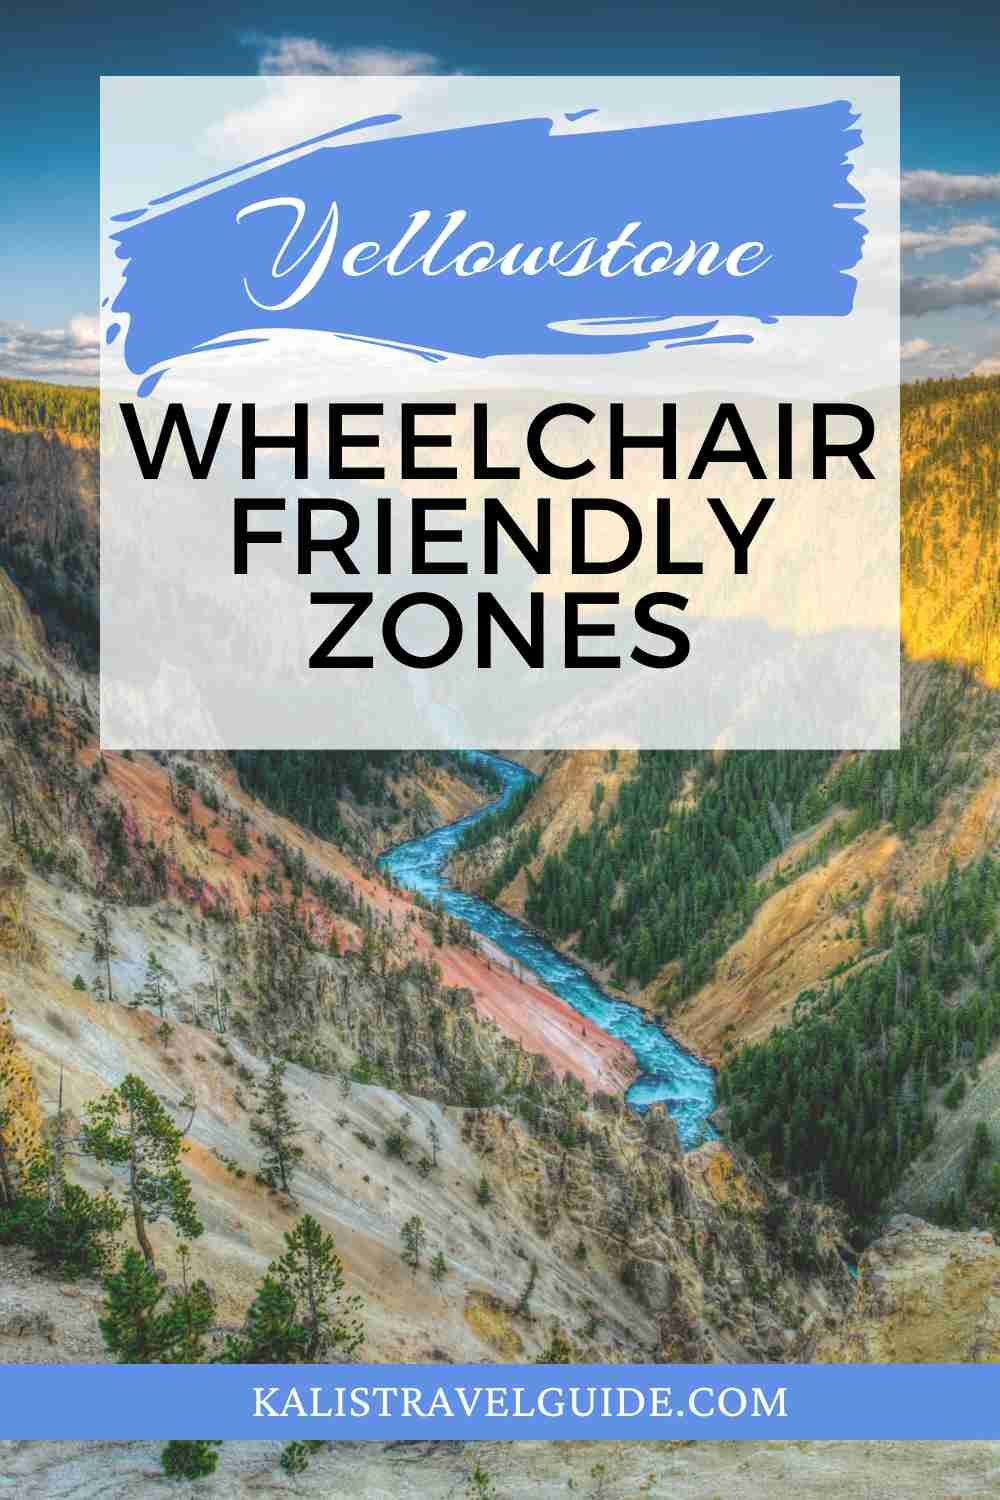 Yellowstone Handicap accessible